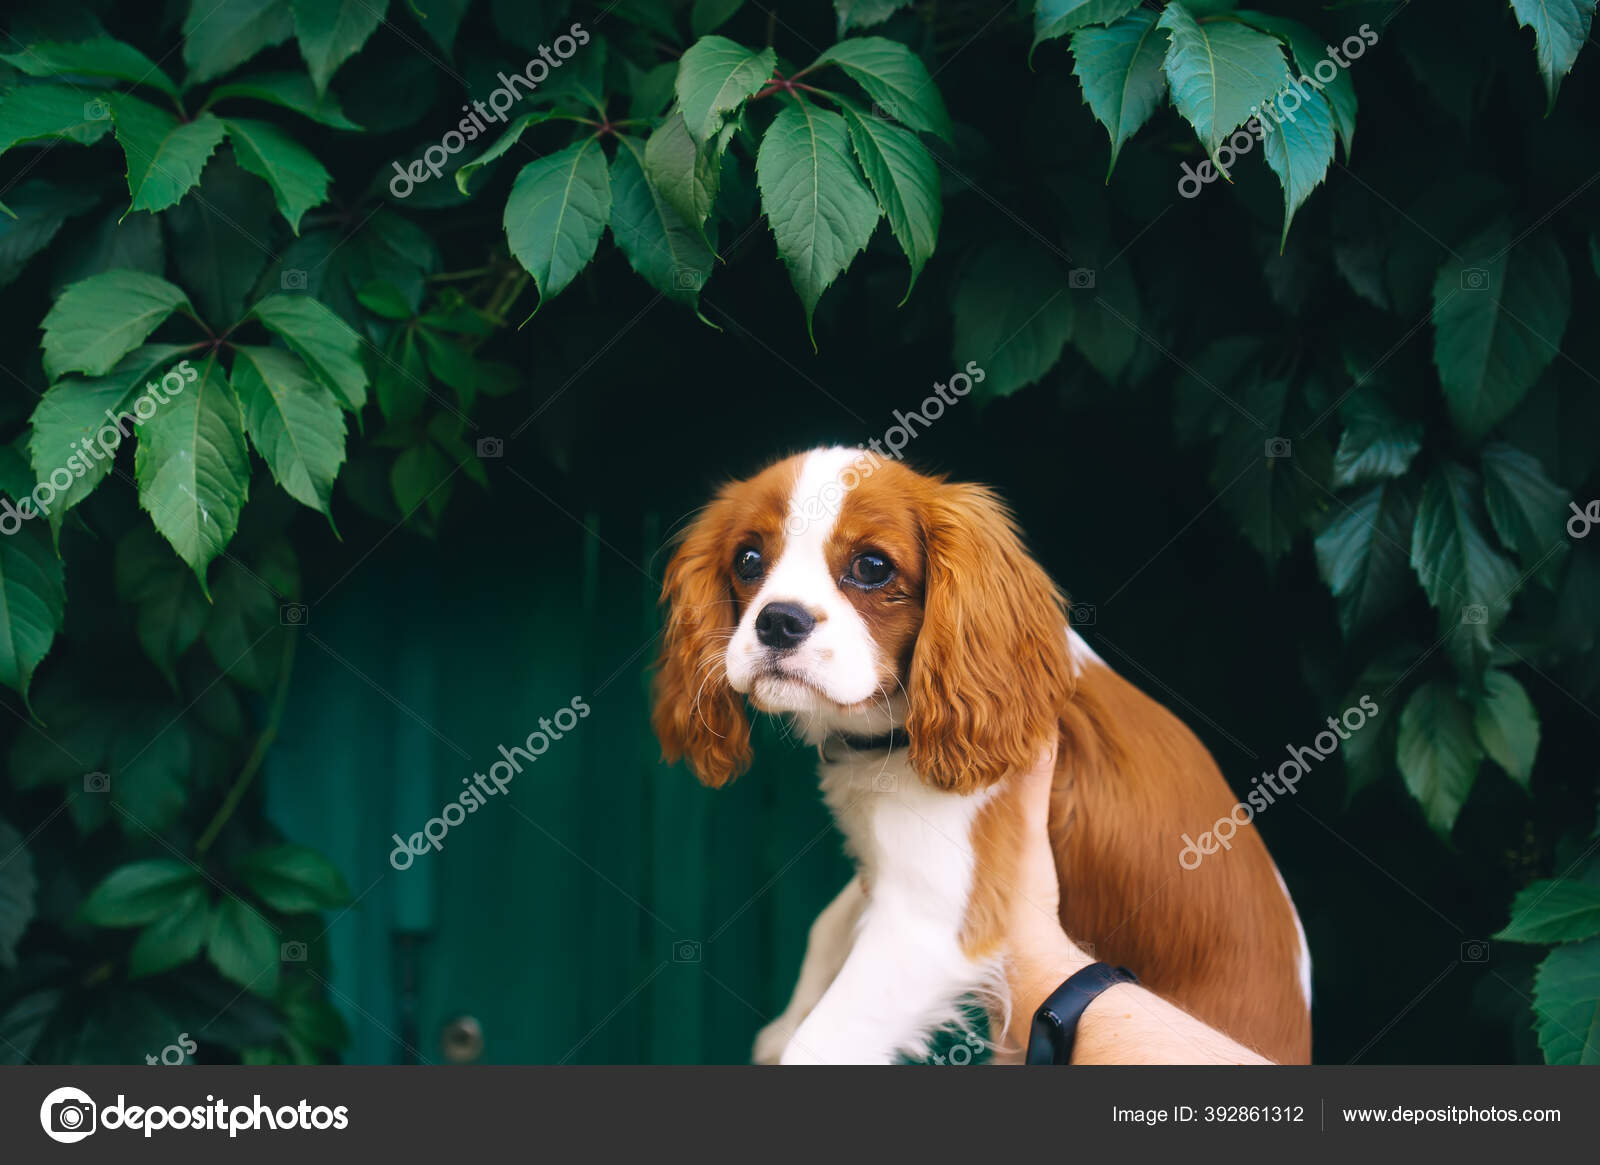 Cute Cavalier King Charles Spaniel Puppy Outdoors Woman Hands Green Stock Photo C Avk78 392861312